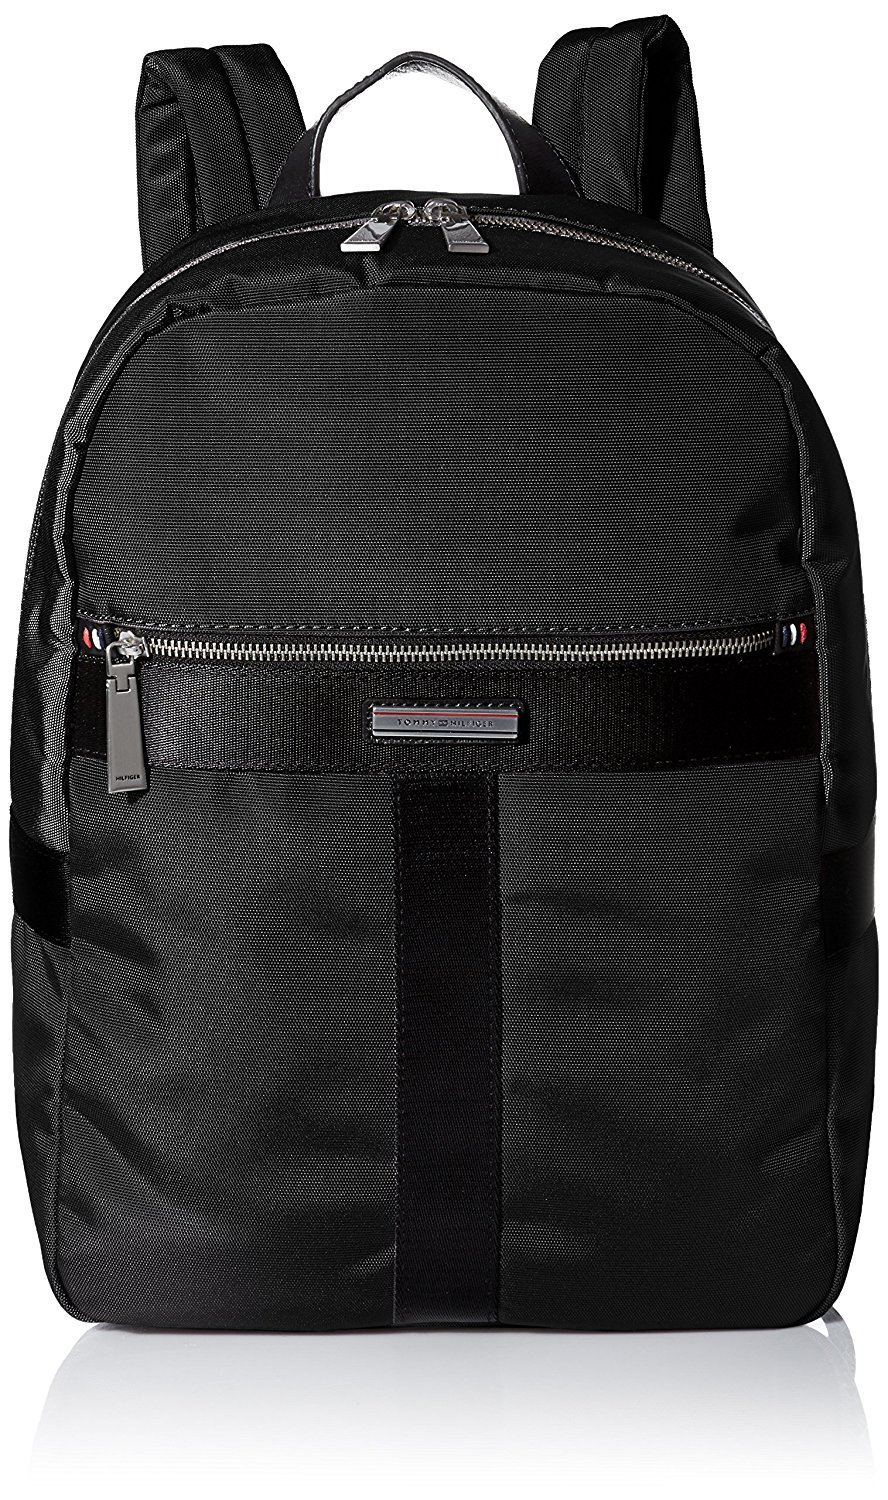 Tommy Hilfiger Cordura Nylon Multipurpose Backpack